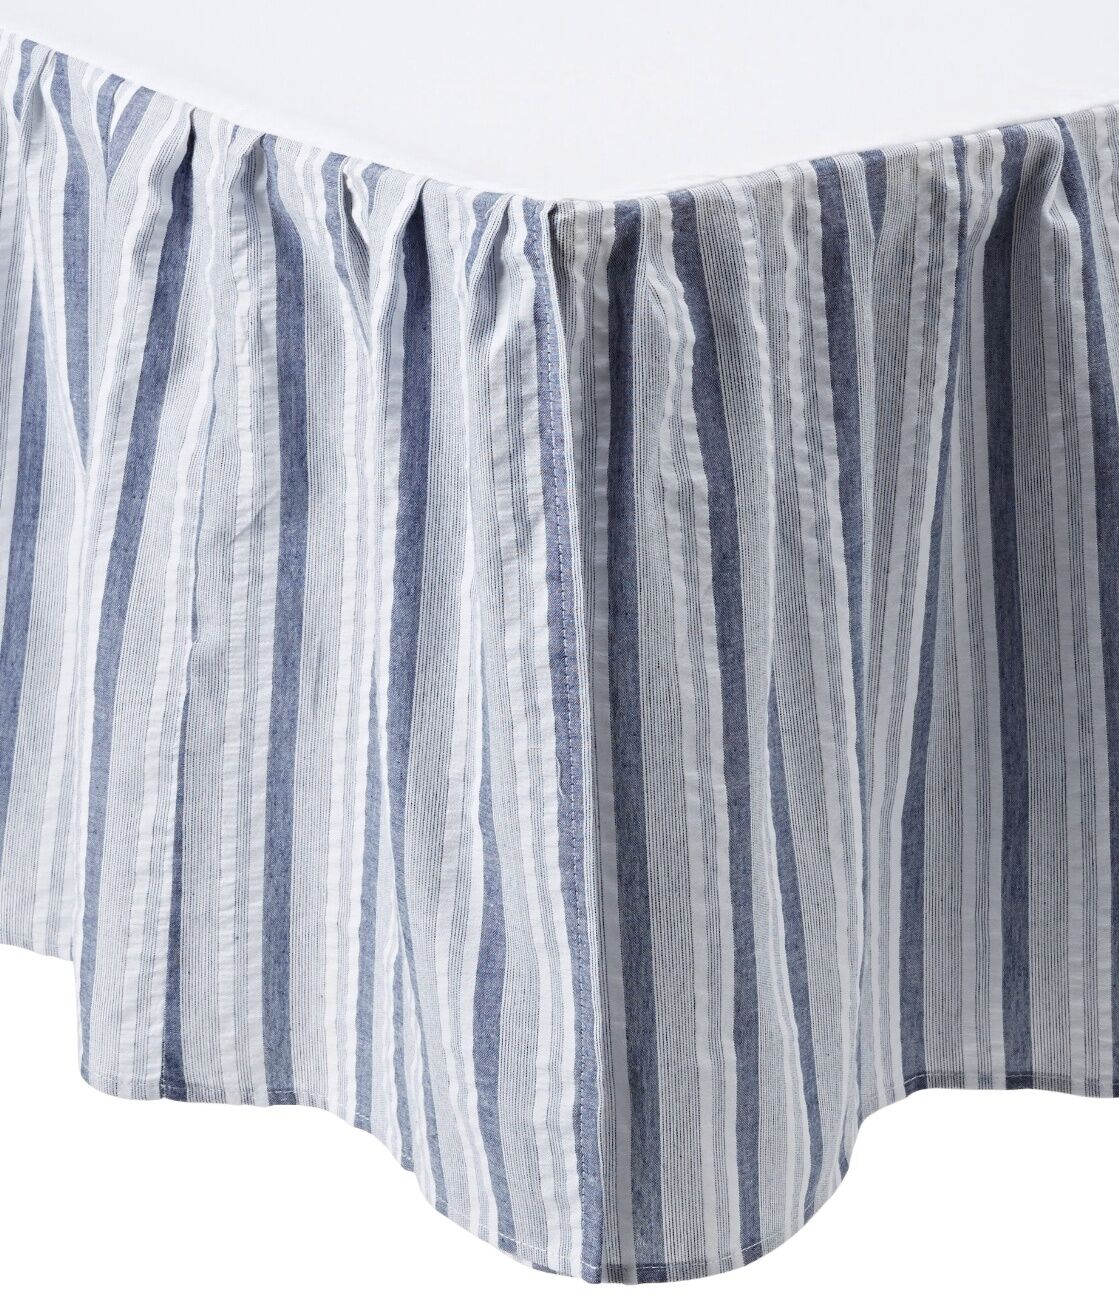 Washable Full Size Bed Skirts